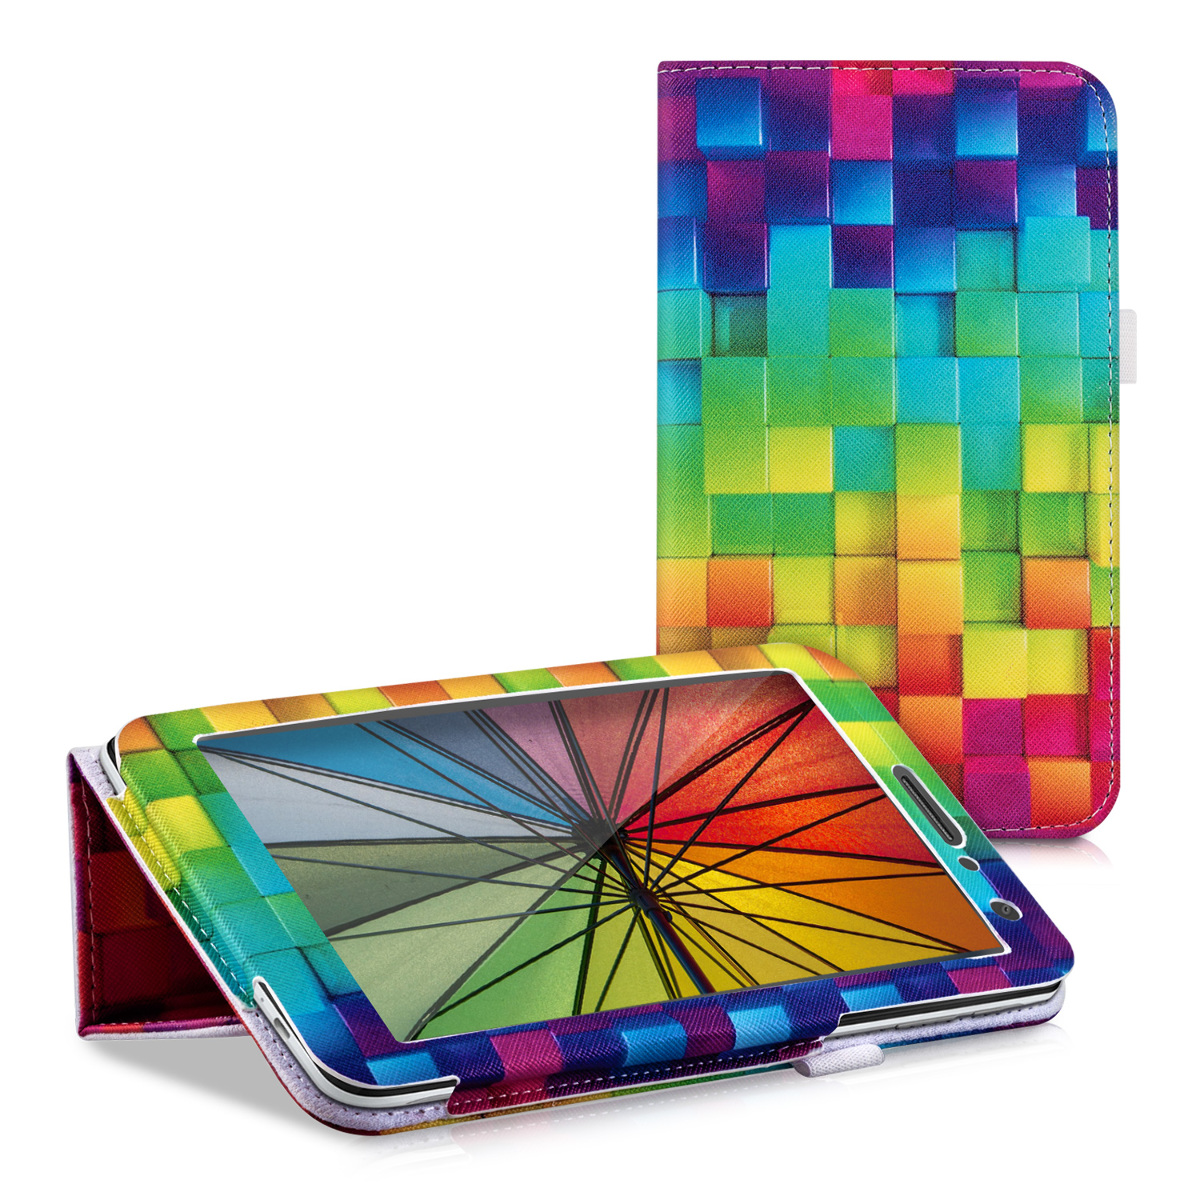 kwmobile-FUNDA-DE-CUERO-SINTETICO-PARA-HUAWEI-MEDIAPAD-T1-7-0-HONOR-PLAY-TABLET